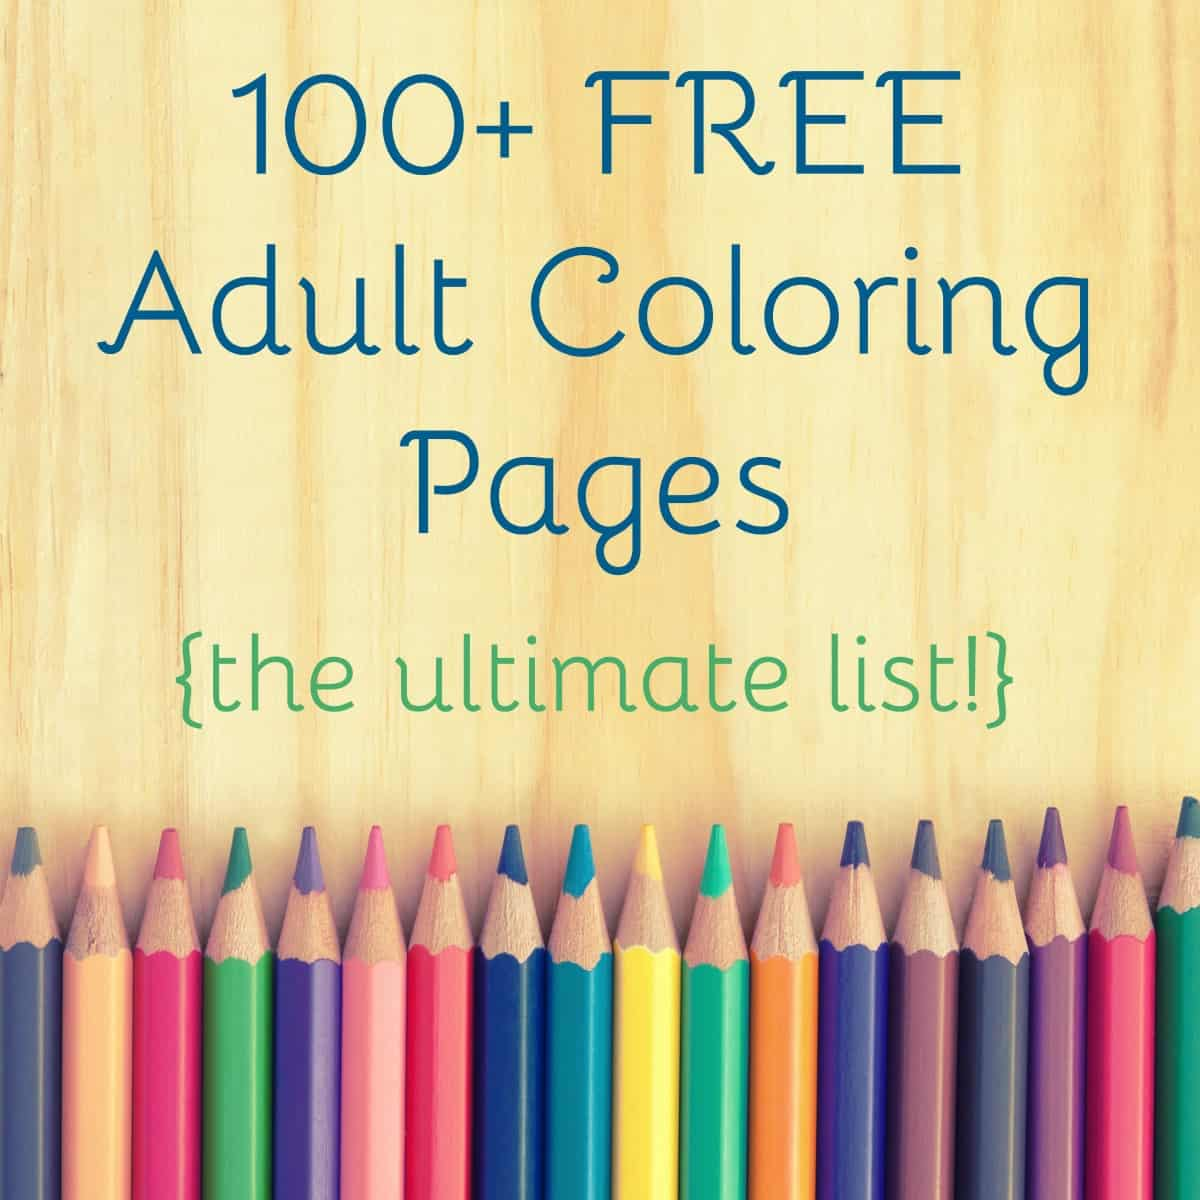 The Ultimate Guide to Free Adult Coloring Pages - DIY Candy